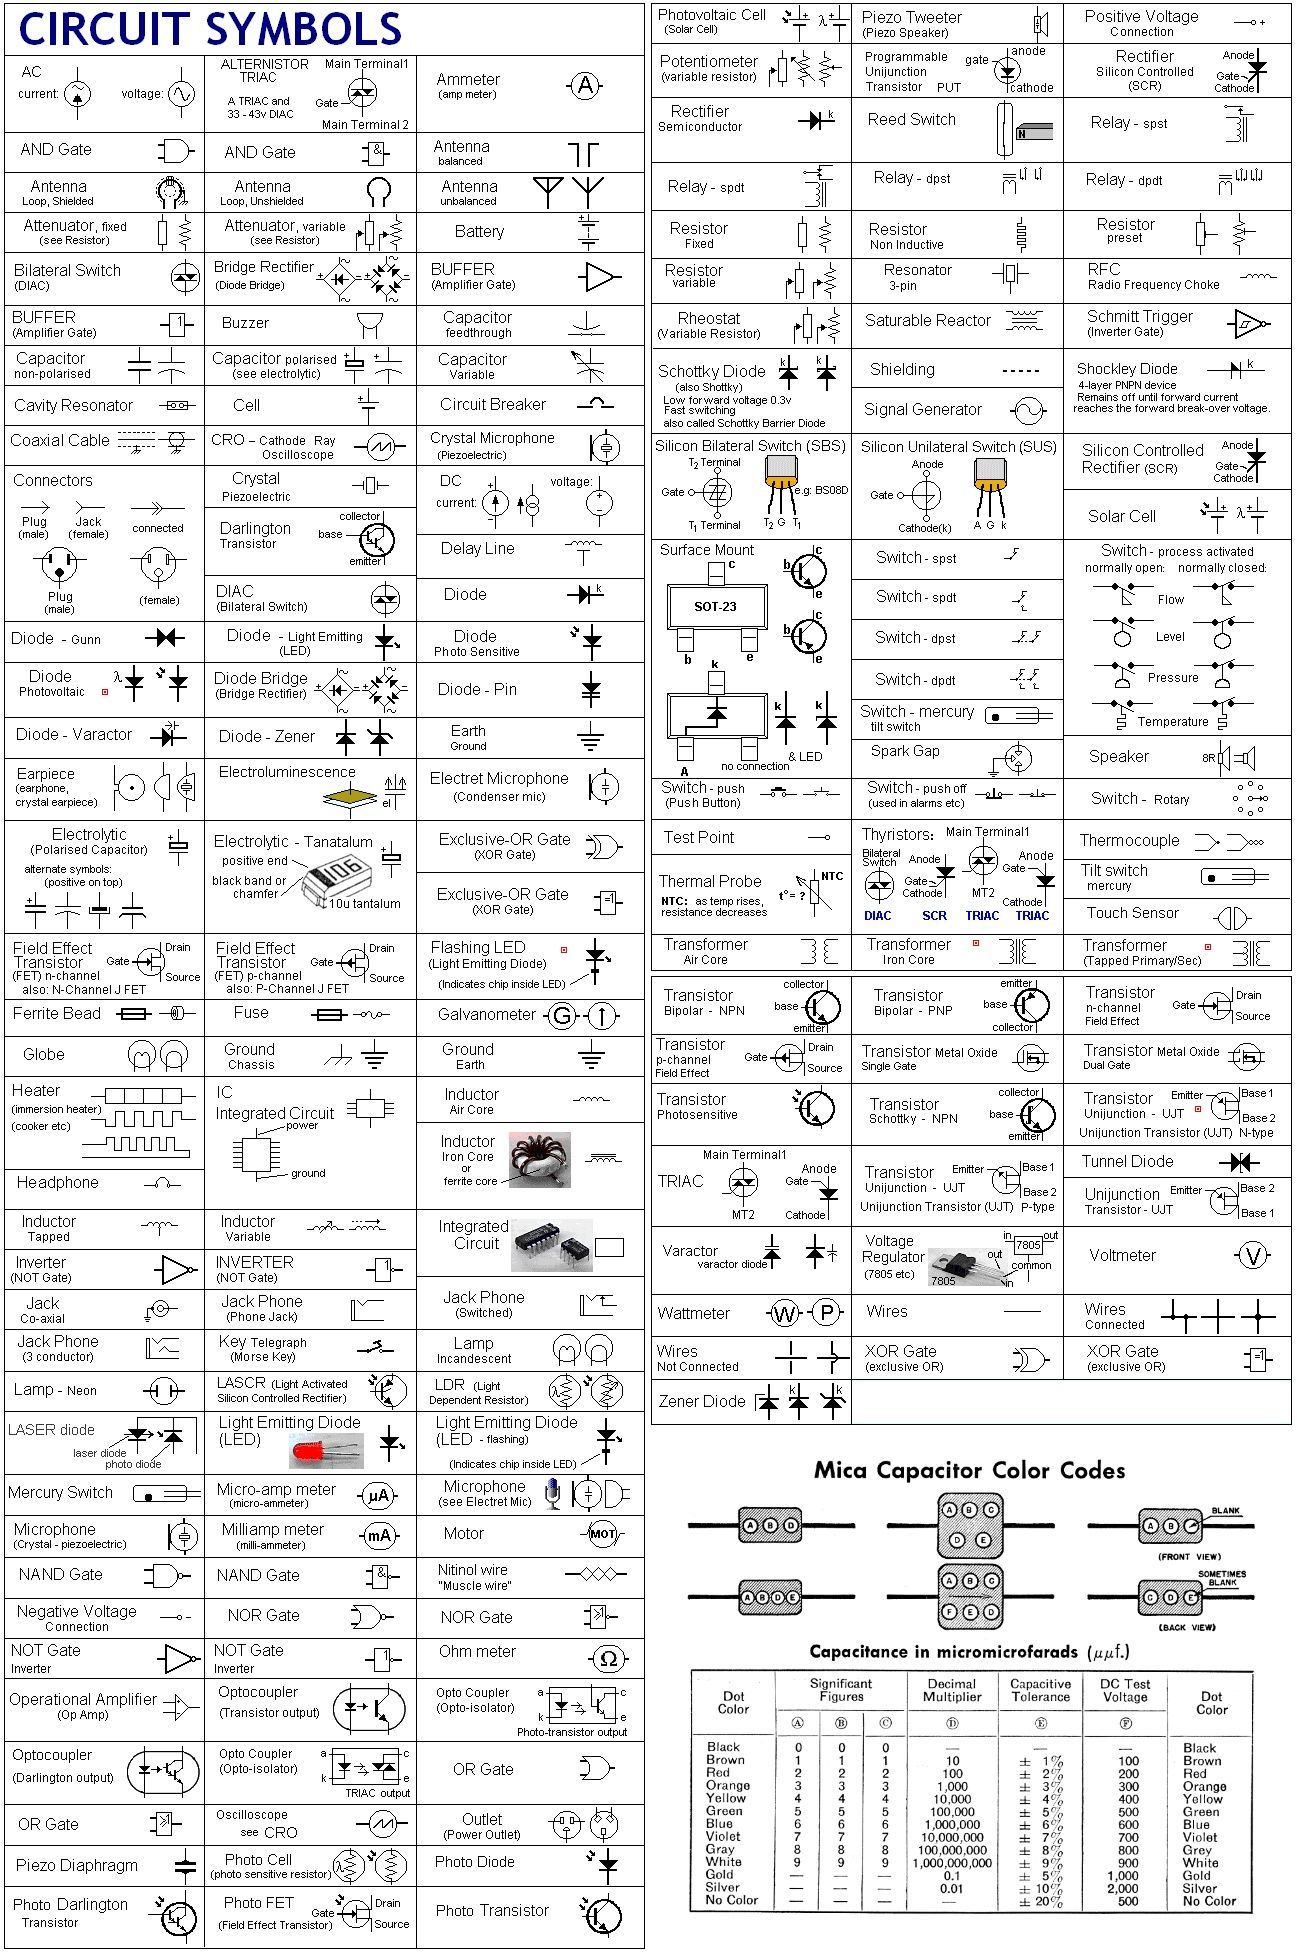 Superb Images About Schematic Symbols On Pinterest Buzzer Electrical Wiring Cloud Hemtshollocom